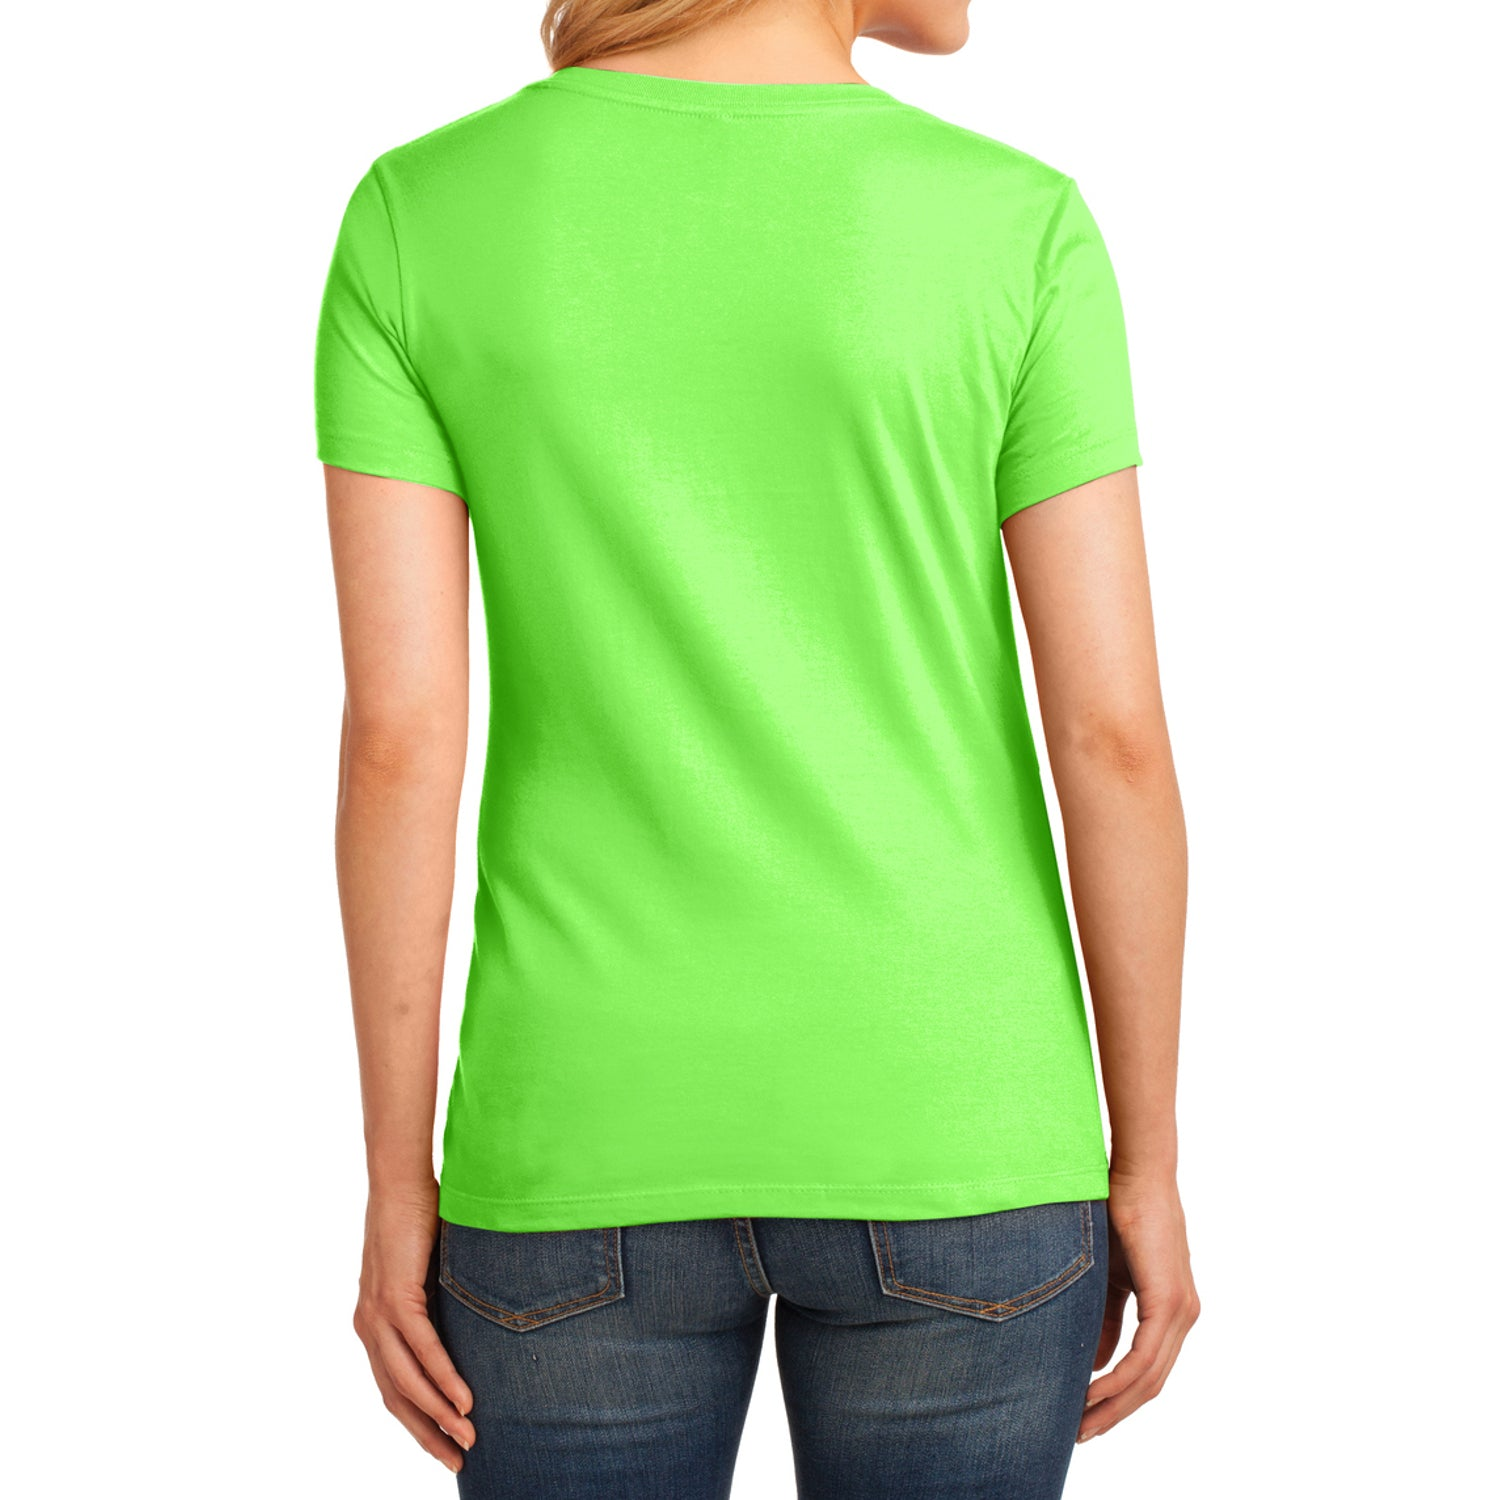 Women's Core Cotton V-Neck Tee - Neon Green - Back